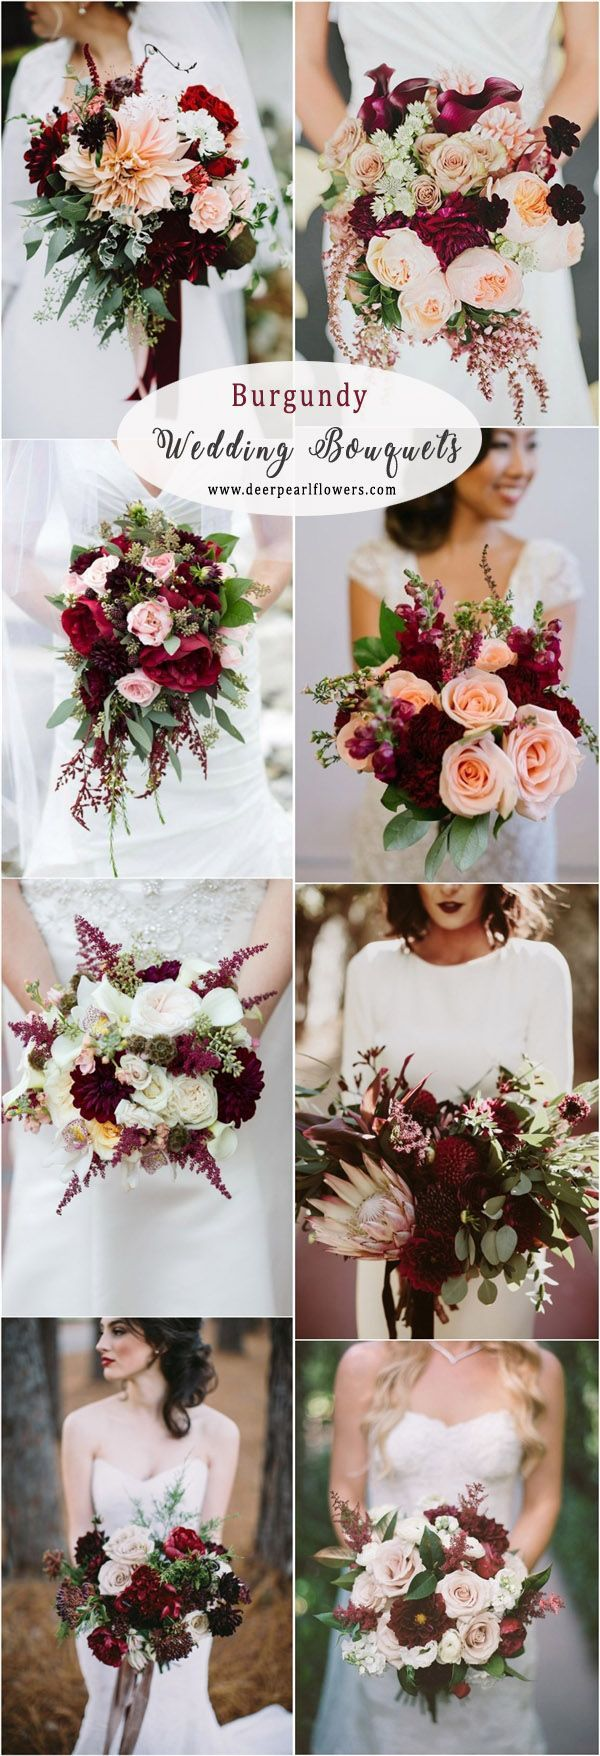 Photo of 40 ideas de boda de Borgoña para bodas de otoño e invierno #weddingfall 40 bu …